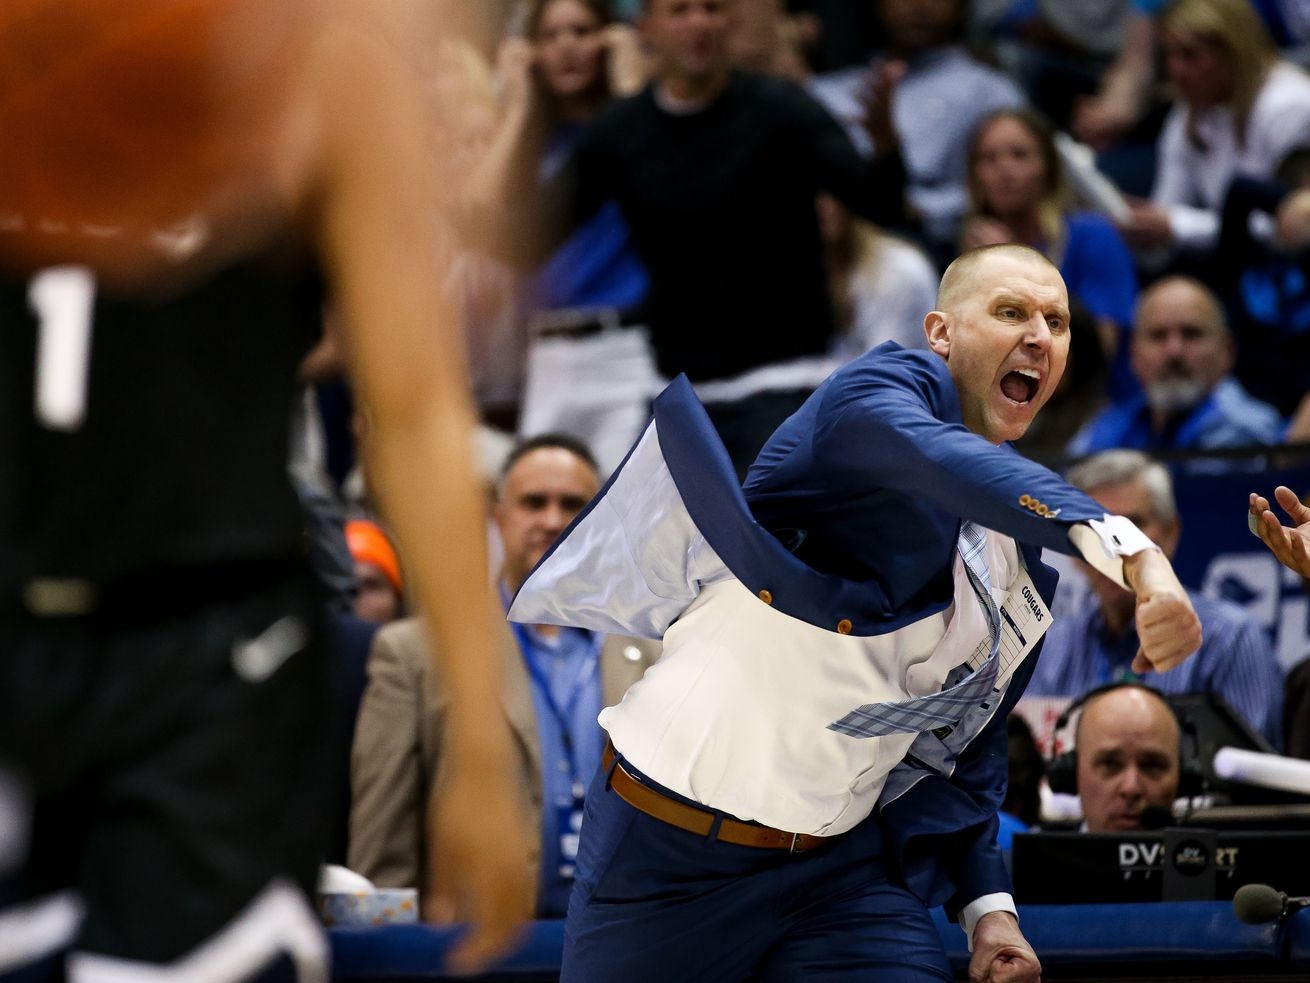 BYU coach Mark Pope yells during game against Gonzaga at the Marriott Center in Provo on Saturday, Feb. 22, 2020.